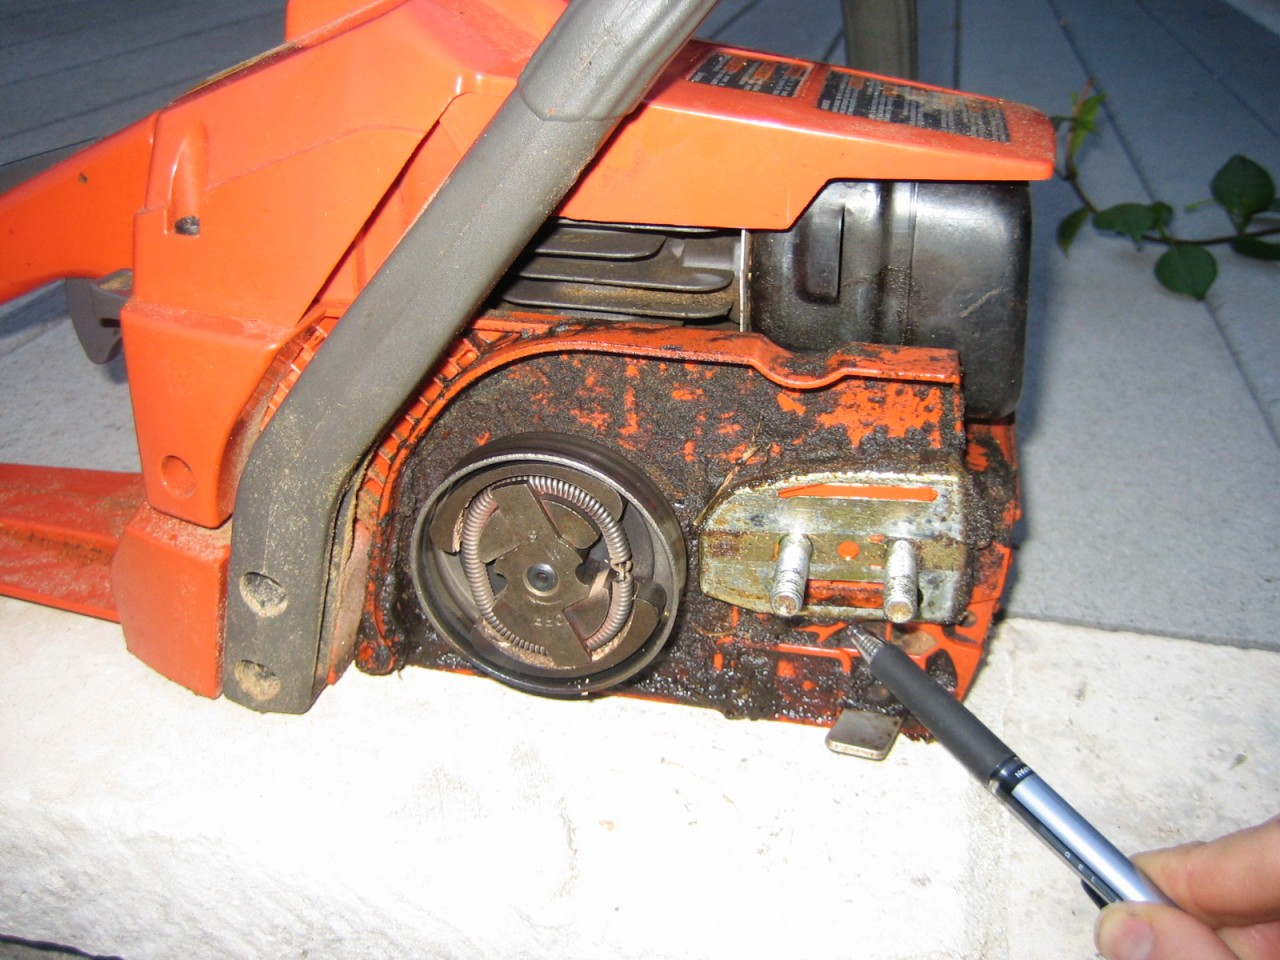 Husqvarna 141 chainsaw no oil on barchain chainsaws forum chainsaws greentooth Images